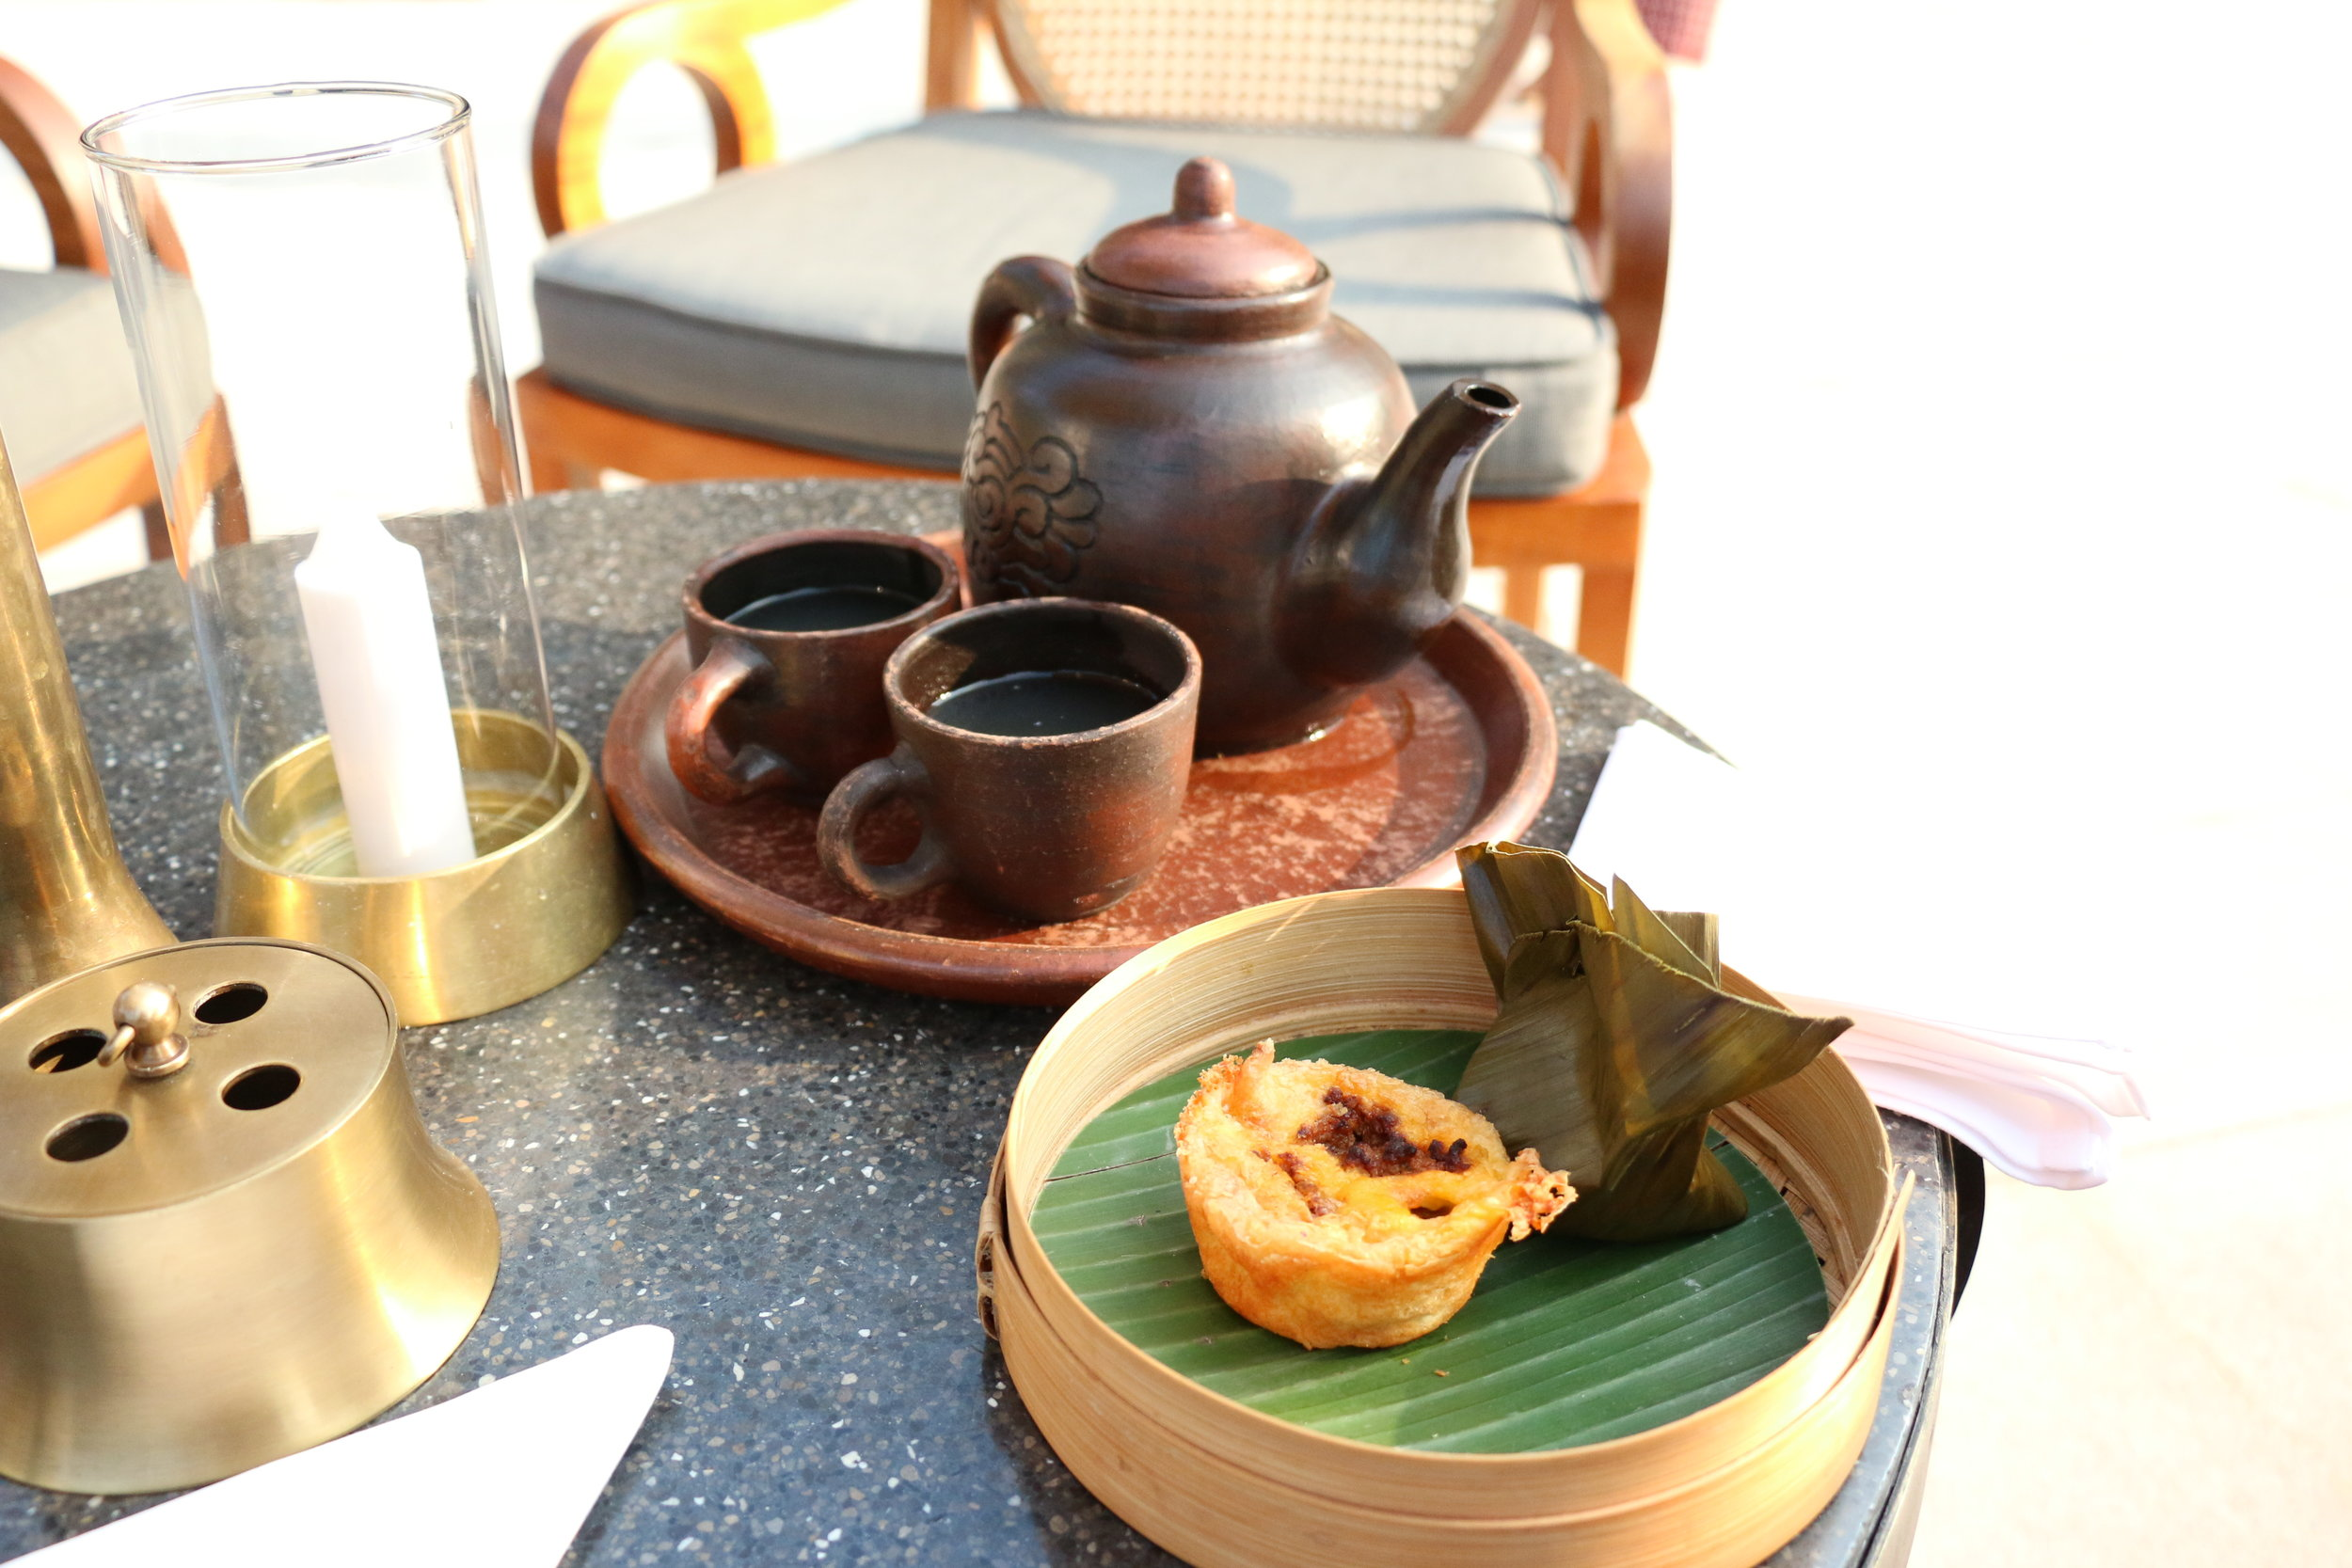 Our tea, a savory pastry filled with some kind of meat filling and a banana leaf wrapped steamed cake made from rice flour and dates